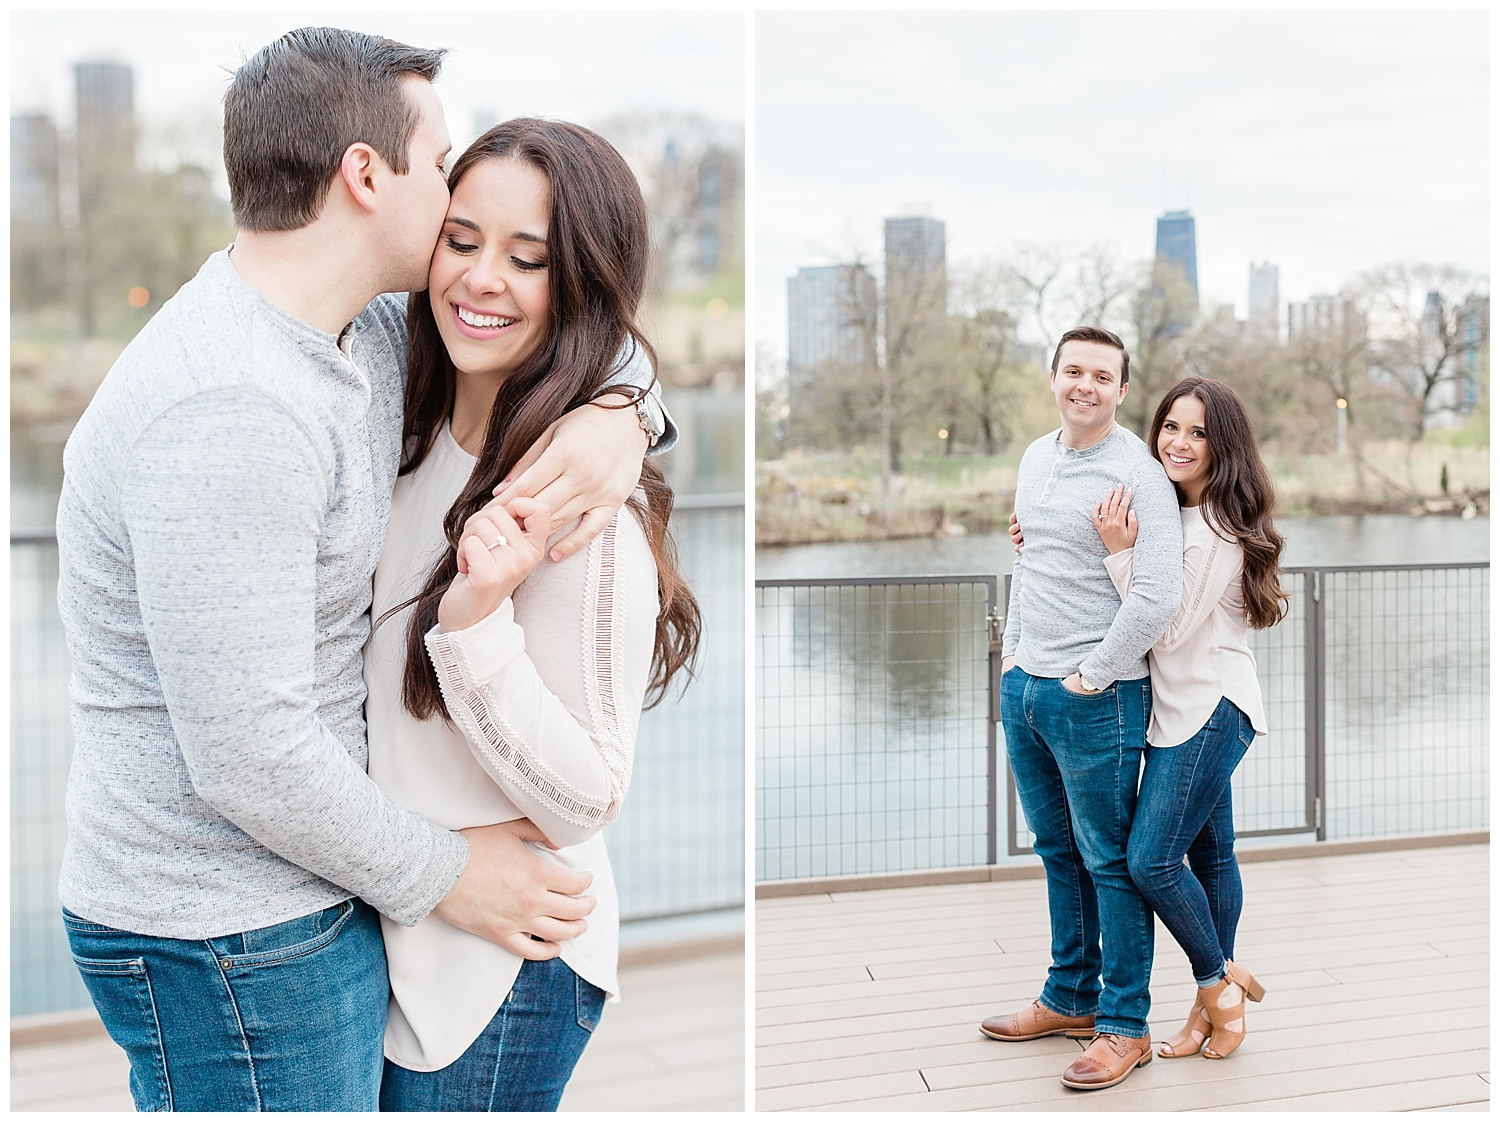 classic-downtown-chicago-engagement-session-kristen-cloyd-photography_0019.jpg